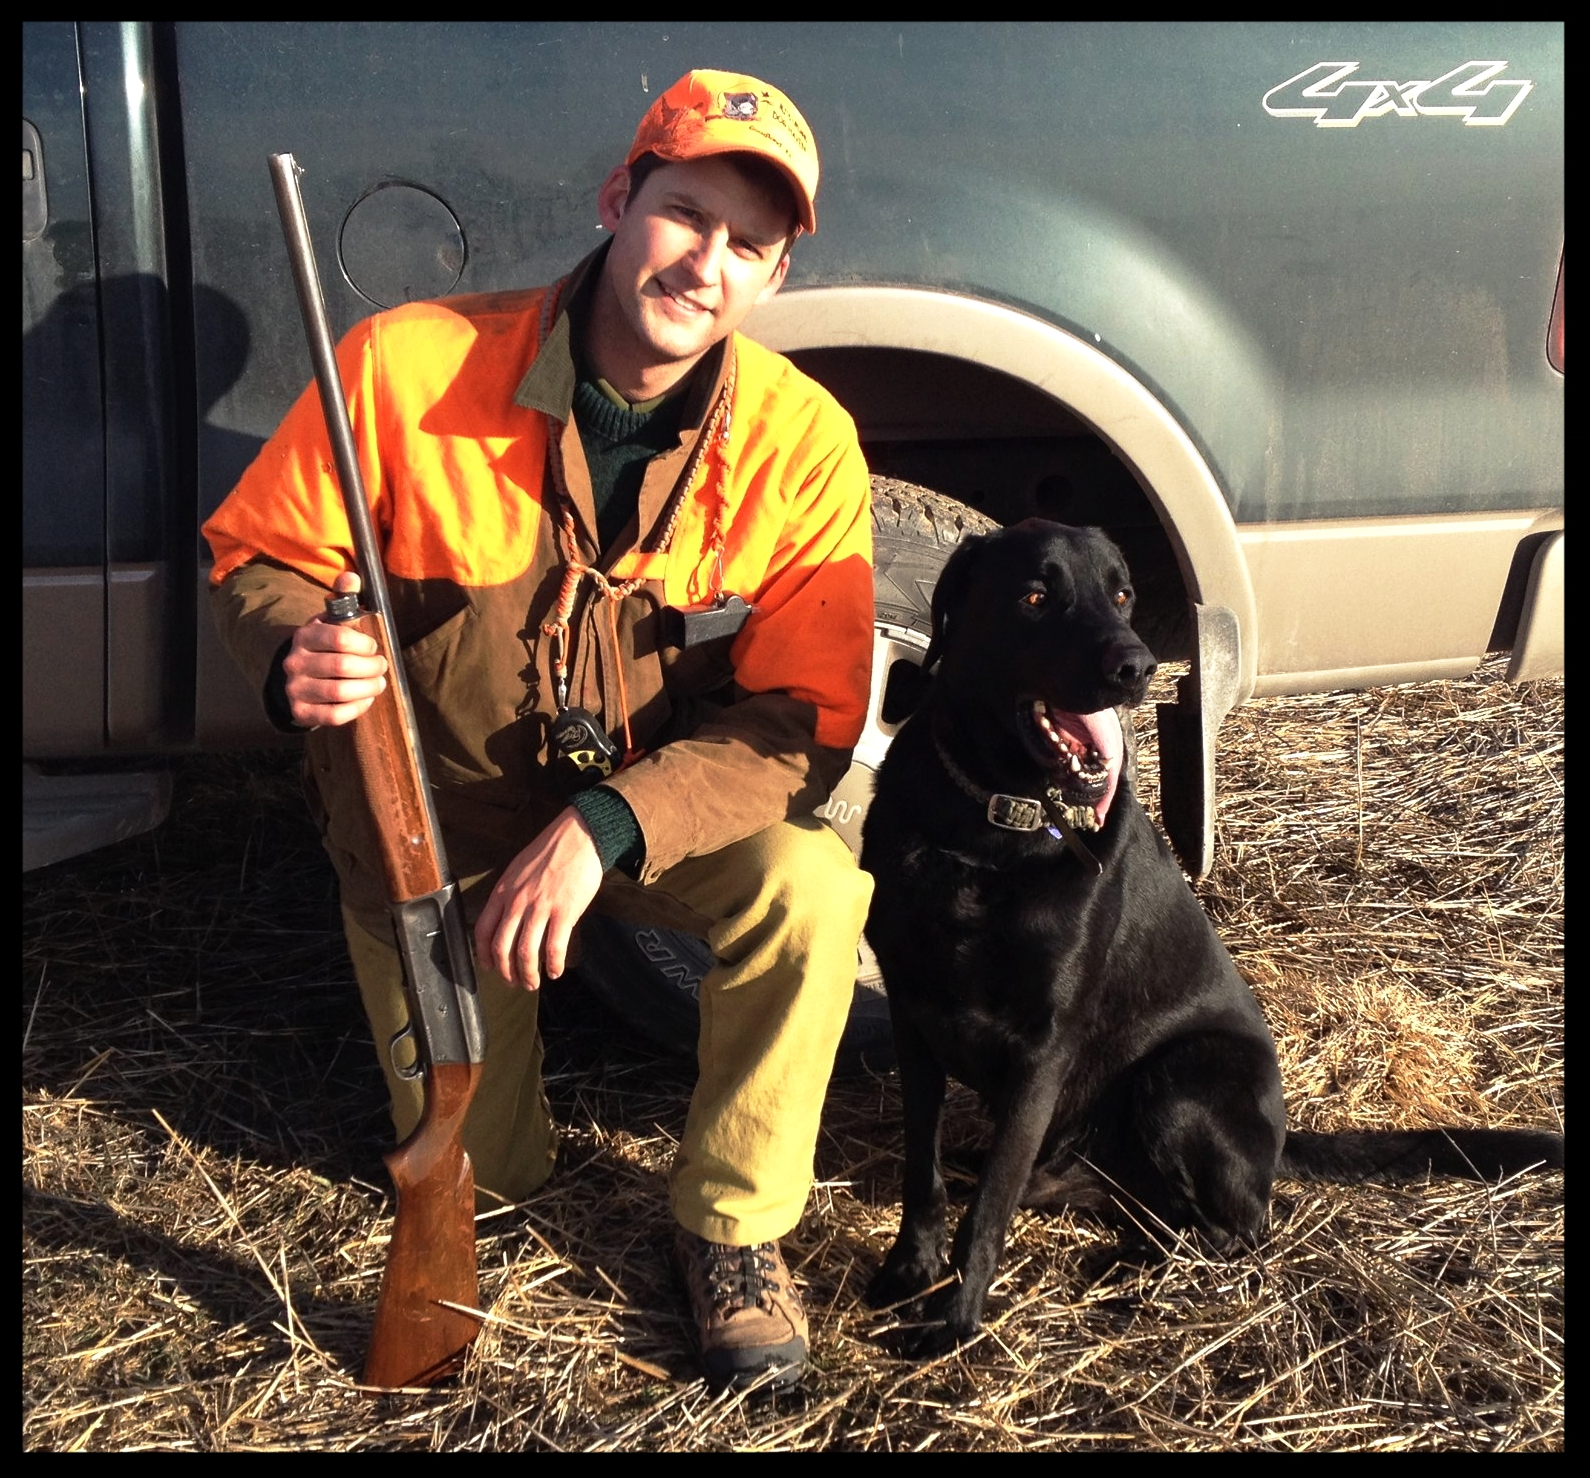 Hunting Violation Attorney Nate Gilbert is an experienced lawyer handling cases for hunters accused of hunting, fishing, and trapping violations by law enforcement. Nate is an avid hunter and dedicates a large portion of his practice to serving the needs of his fellow sportsmen and women. Having appeared for clients in numerous courts and consulted with hunters across the nation, Nate has a vast knowledge of wildlife laws and practical experience that he brings to each case. If you have been charged with a Colorado Hunting Violation, or any other hunting related offense, contact Nate for a free consultation on your case.